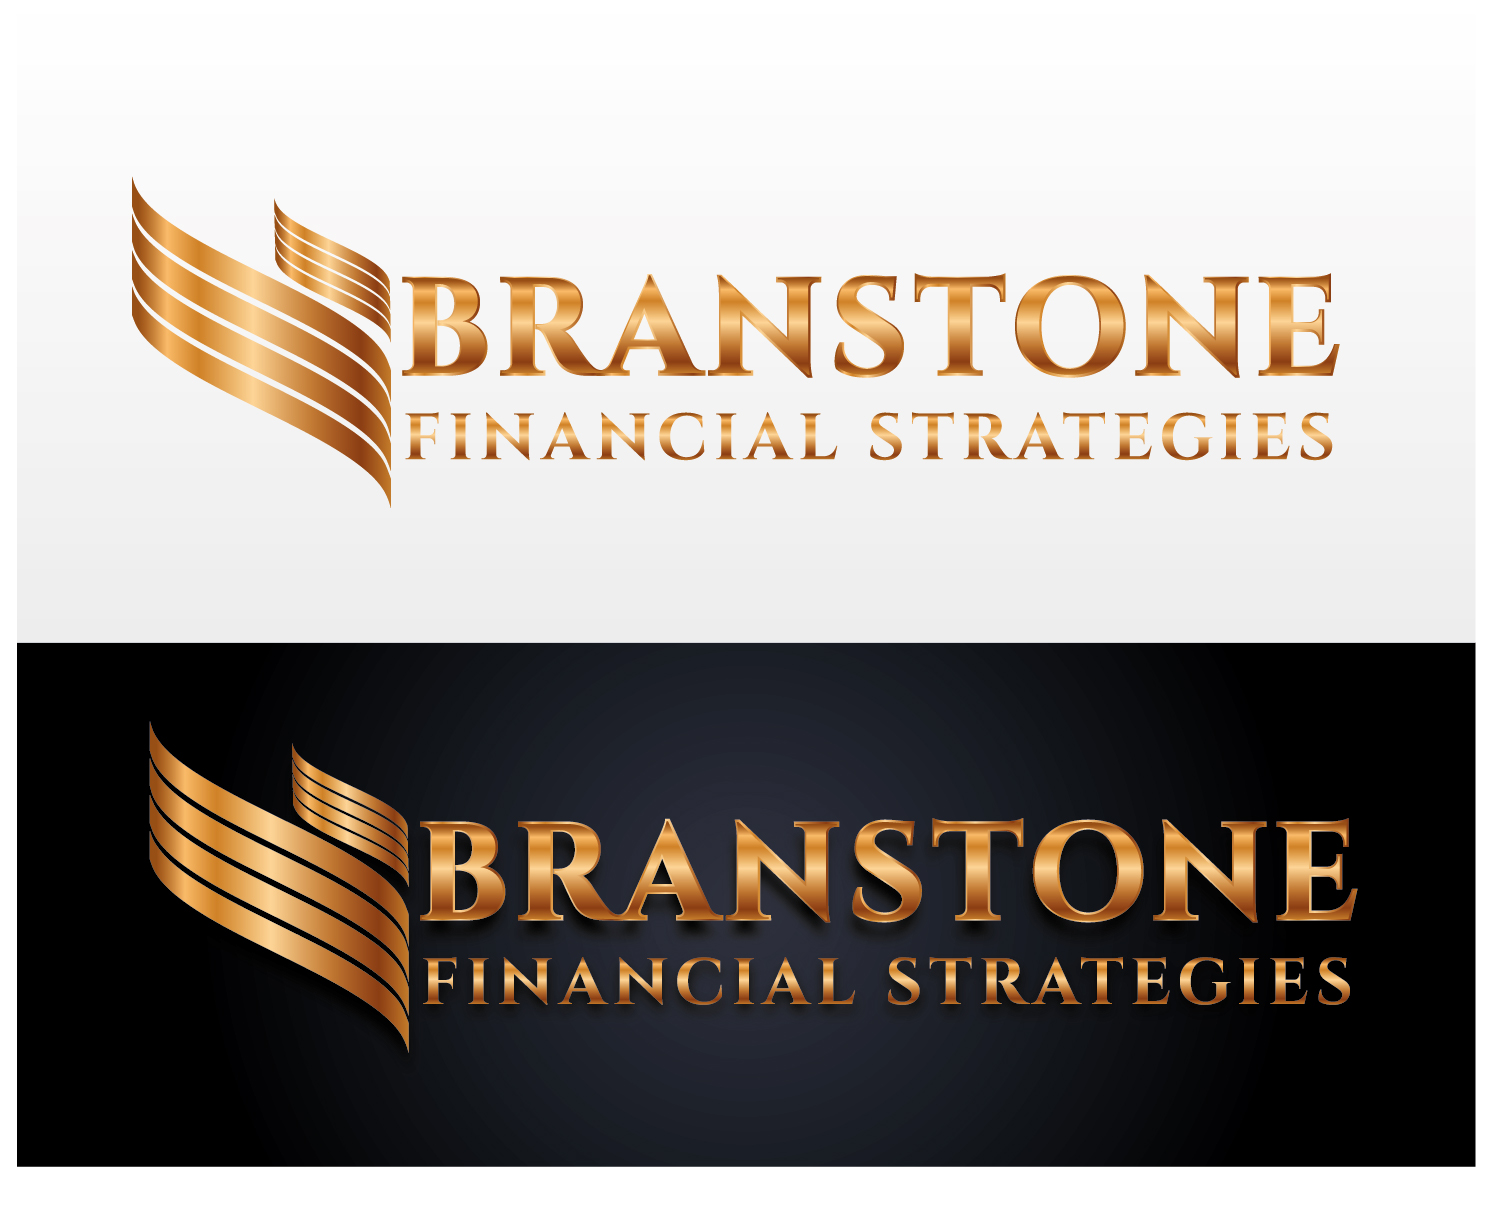 Logo Design by VENTSISLAV KOVACHEV - Entry No. 82 in the Logo Design Contest Inspiring Logo Design for Branstone Financial Strategies.